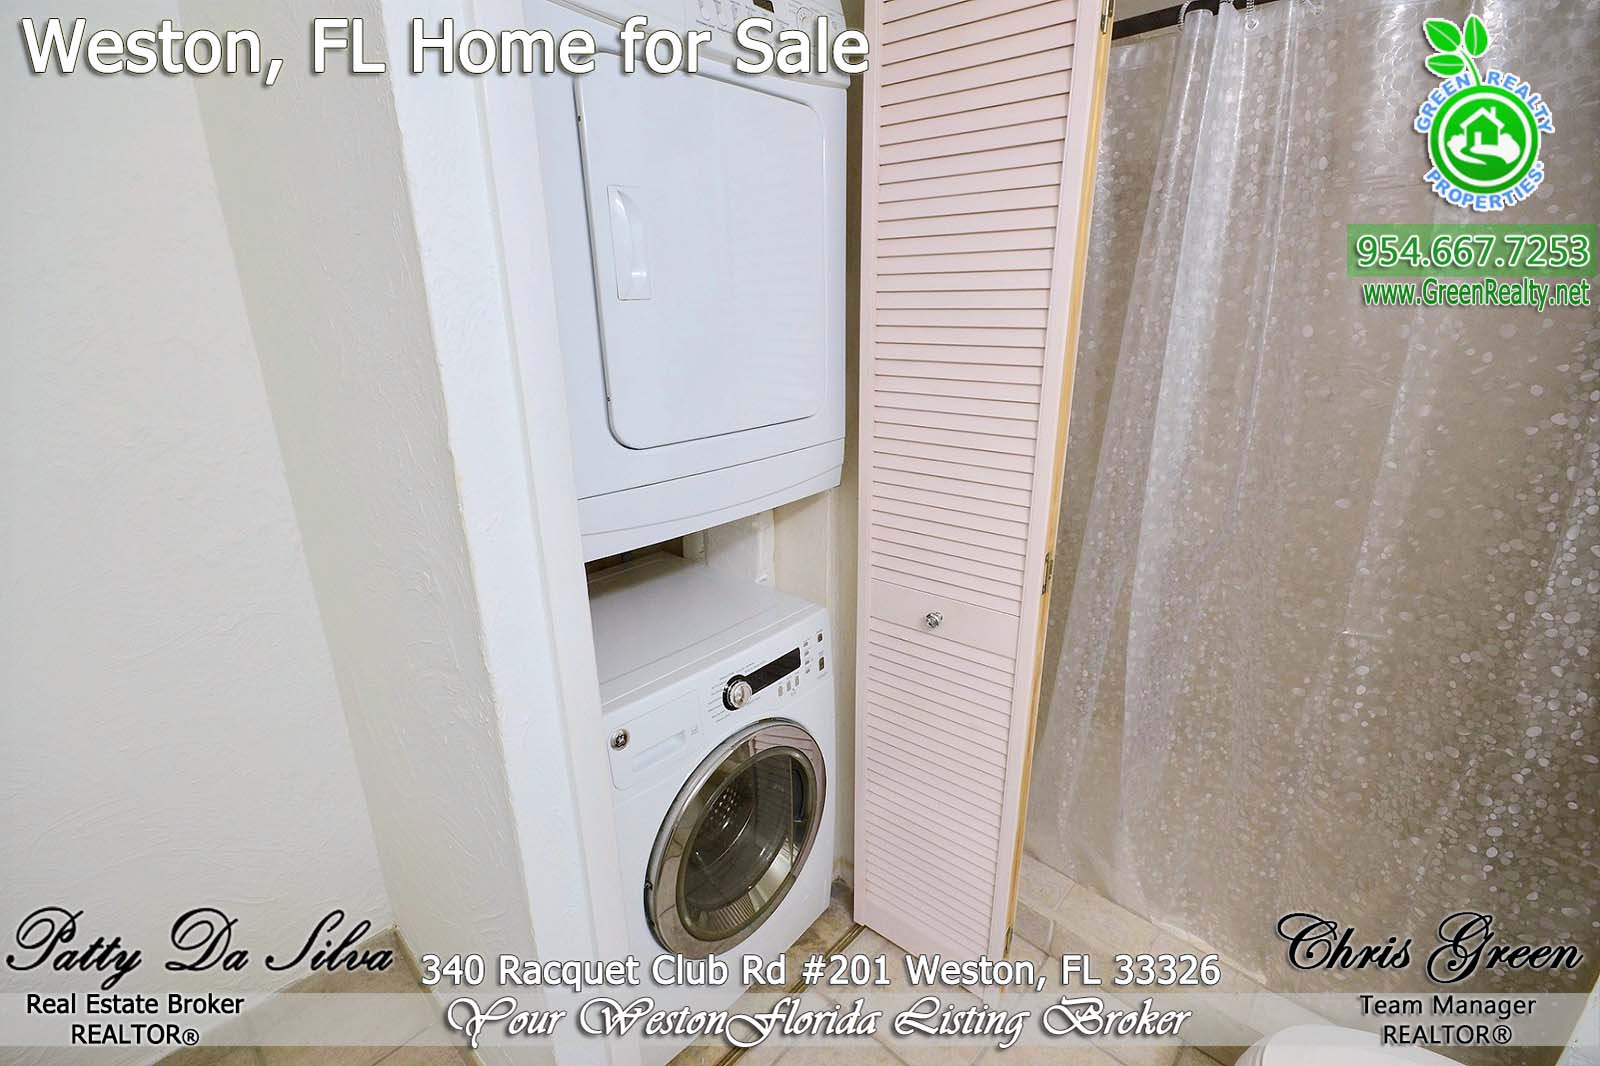 20 Weston Homes in FL For Sale